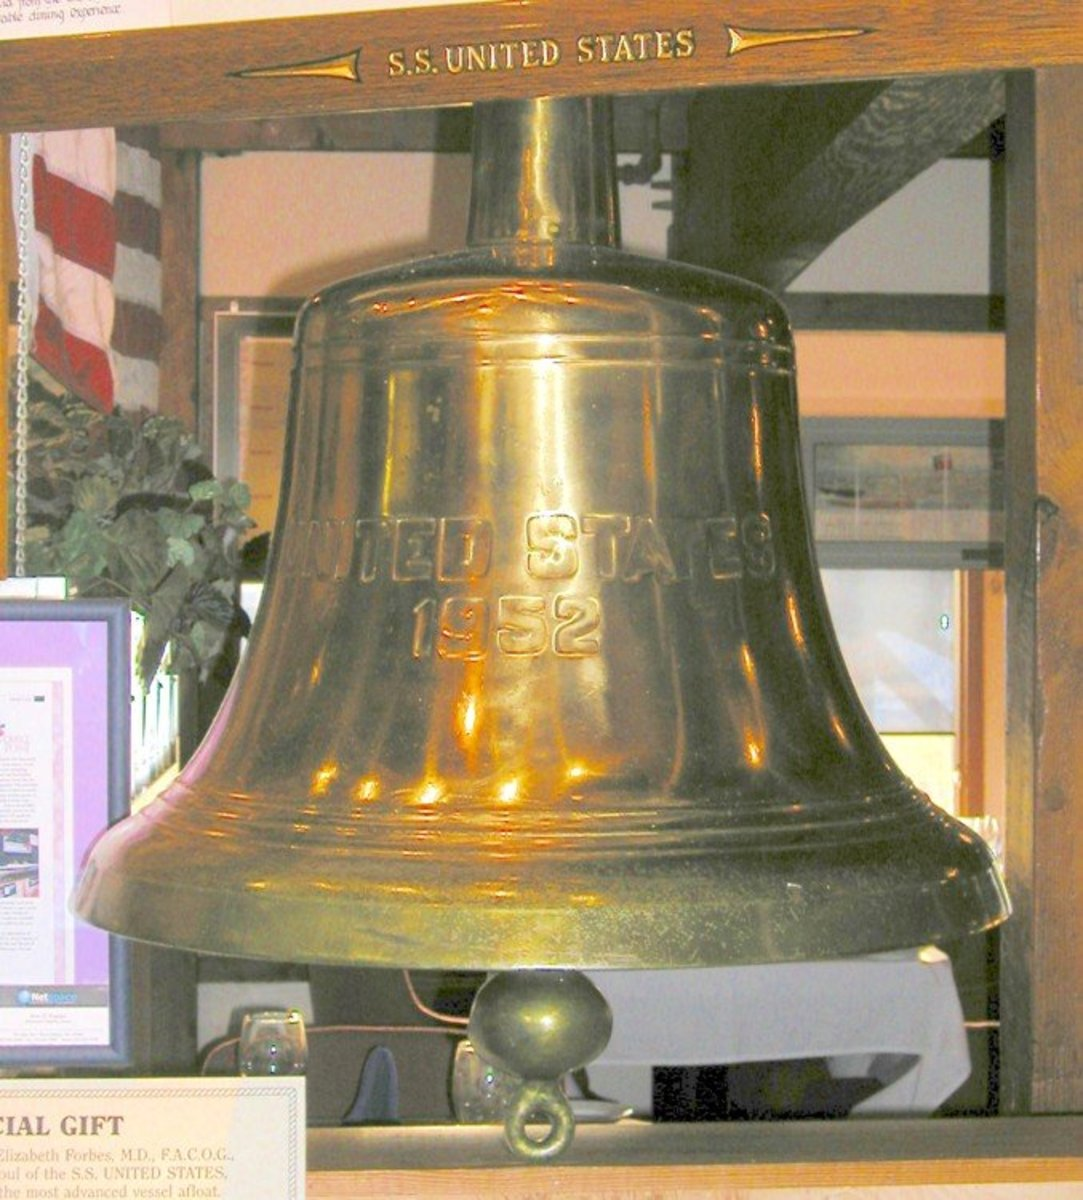 The ship's bell resides at Windmill Point Restaurant  in Nags Head, NC. The restaurant uses original furniture from the SS United States and displays many artifacts.